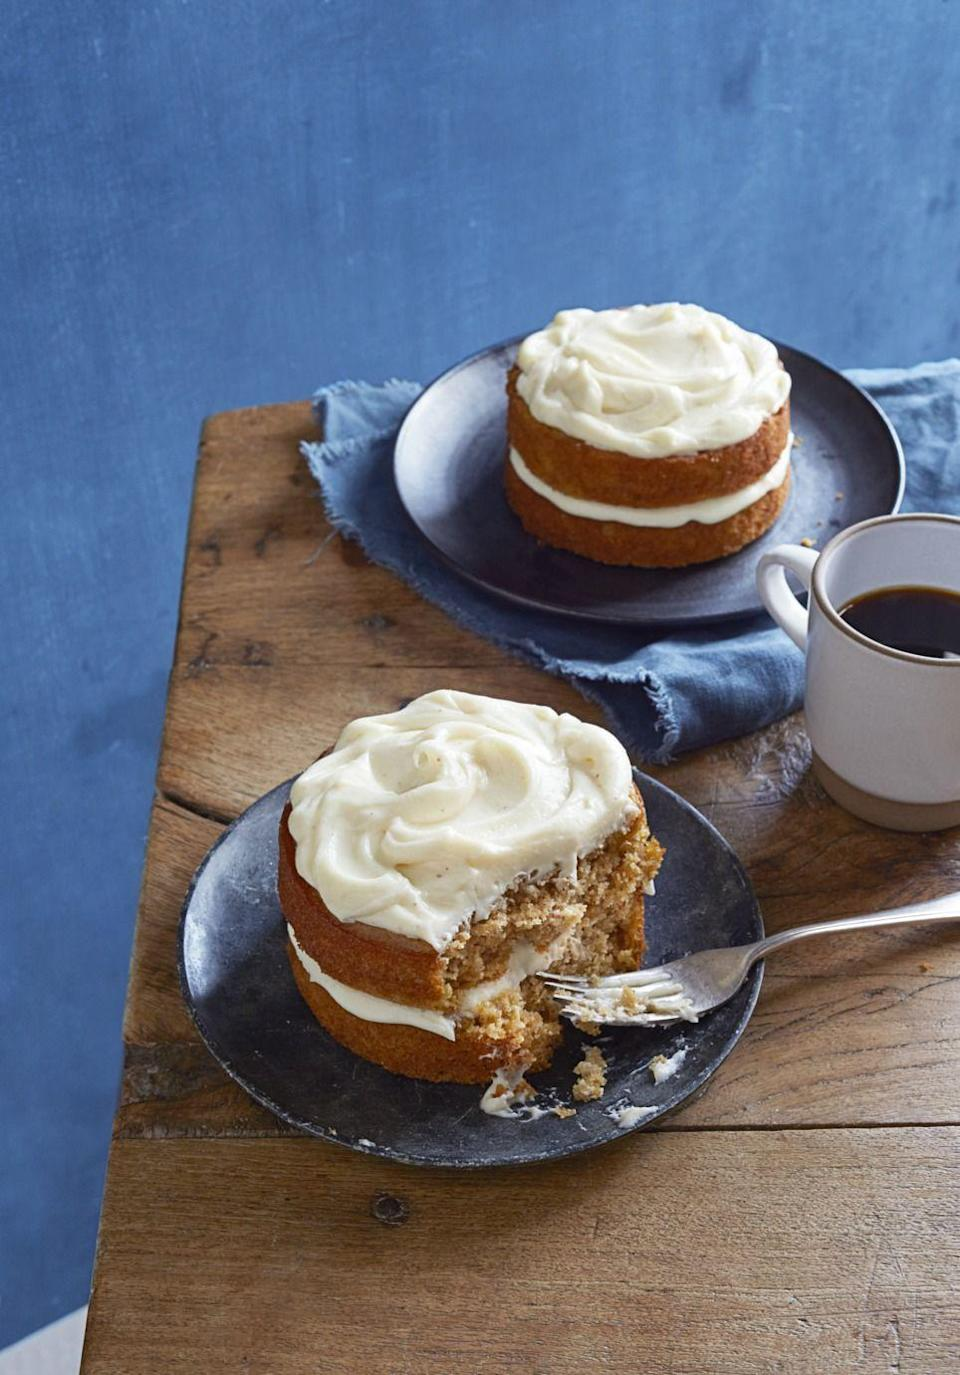 "<p>We'll let you in on a little secret. We snuck some root veggies (butternut squash, parsnips) into these warm and cozy cakes. </p><p><em><a href=""https://www.goodhousekeeping.com/food-recipes/a15941/spiced-parsnip-cake-recipe-ghk1014/"" rel=""nofollow noopener"" target=""_blank"" data-ylk=""slk:Get the recipe for Spiced Parsnip Cakes »"" class=""link rapid-noclick-resp"">Get the recipe for Spiced Parsnip Cakes »</a></em></p>"